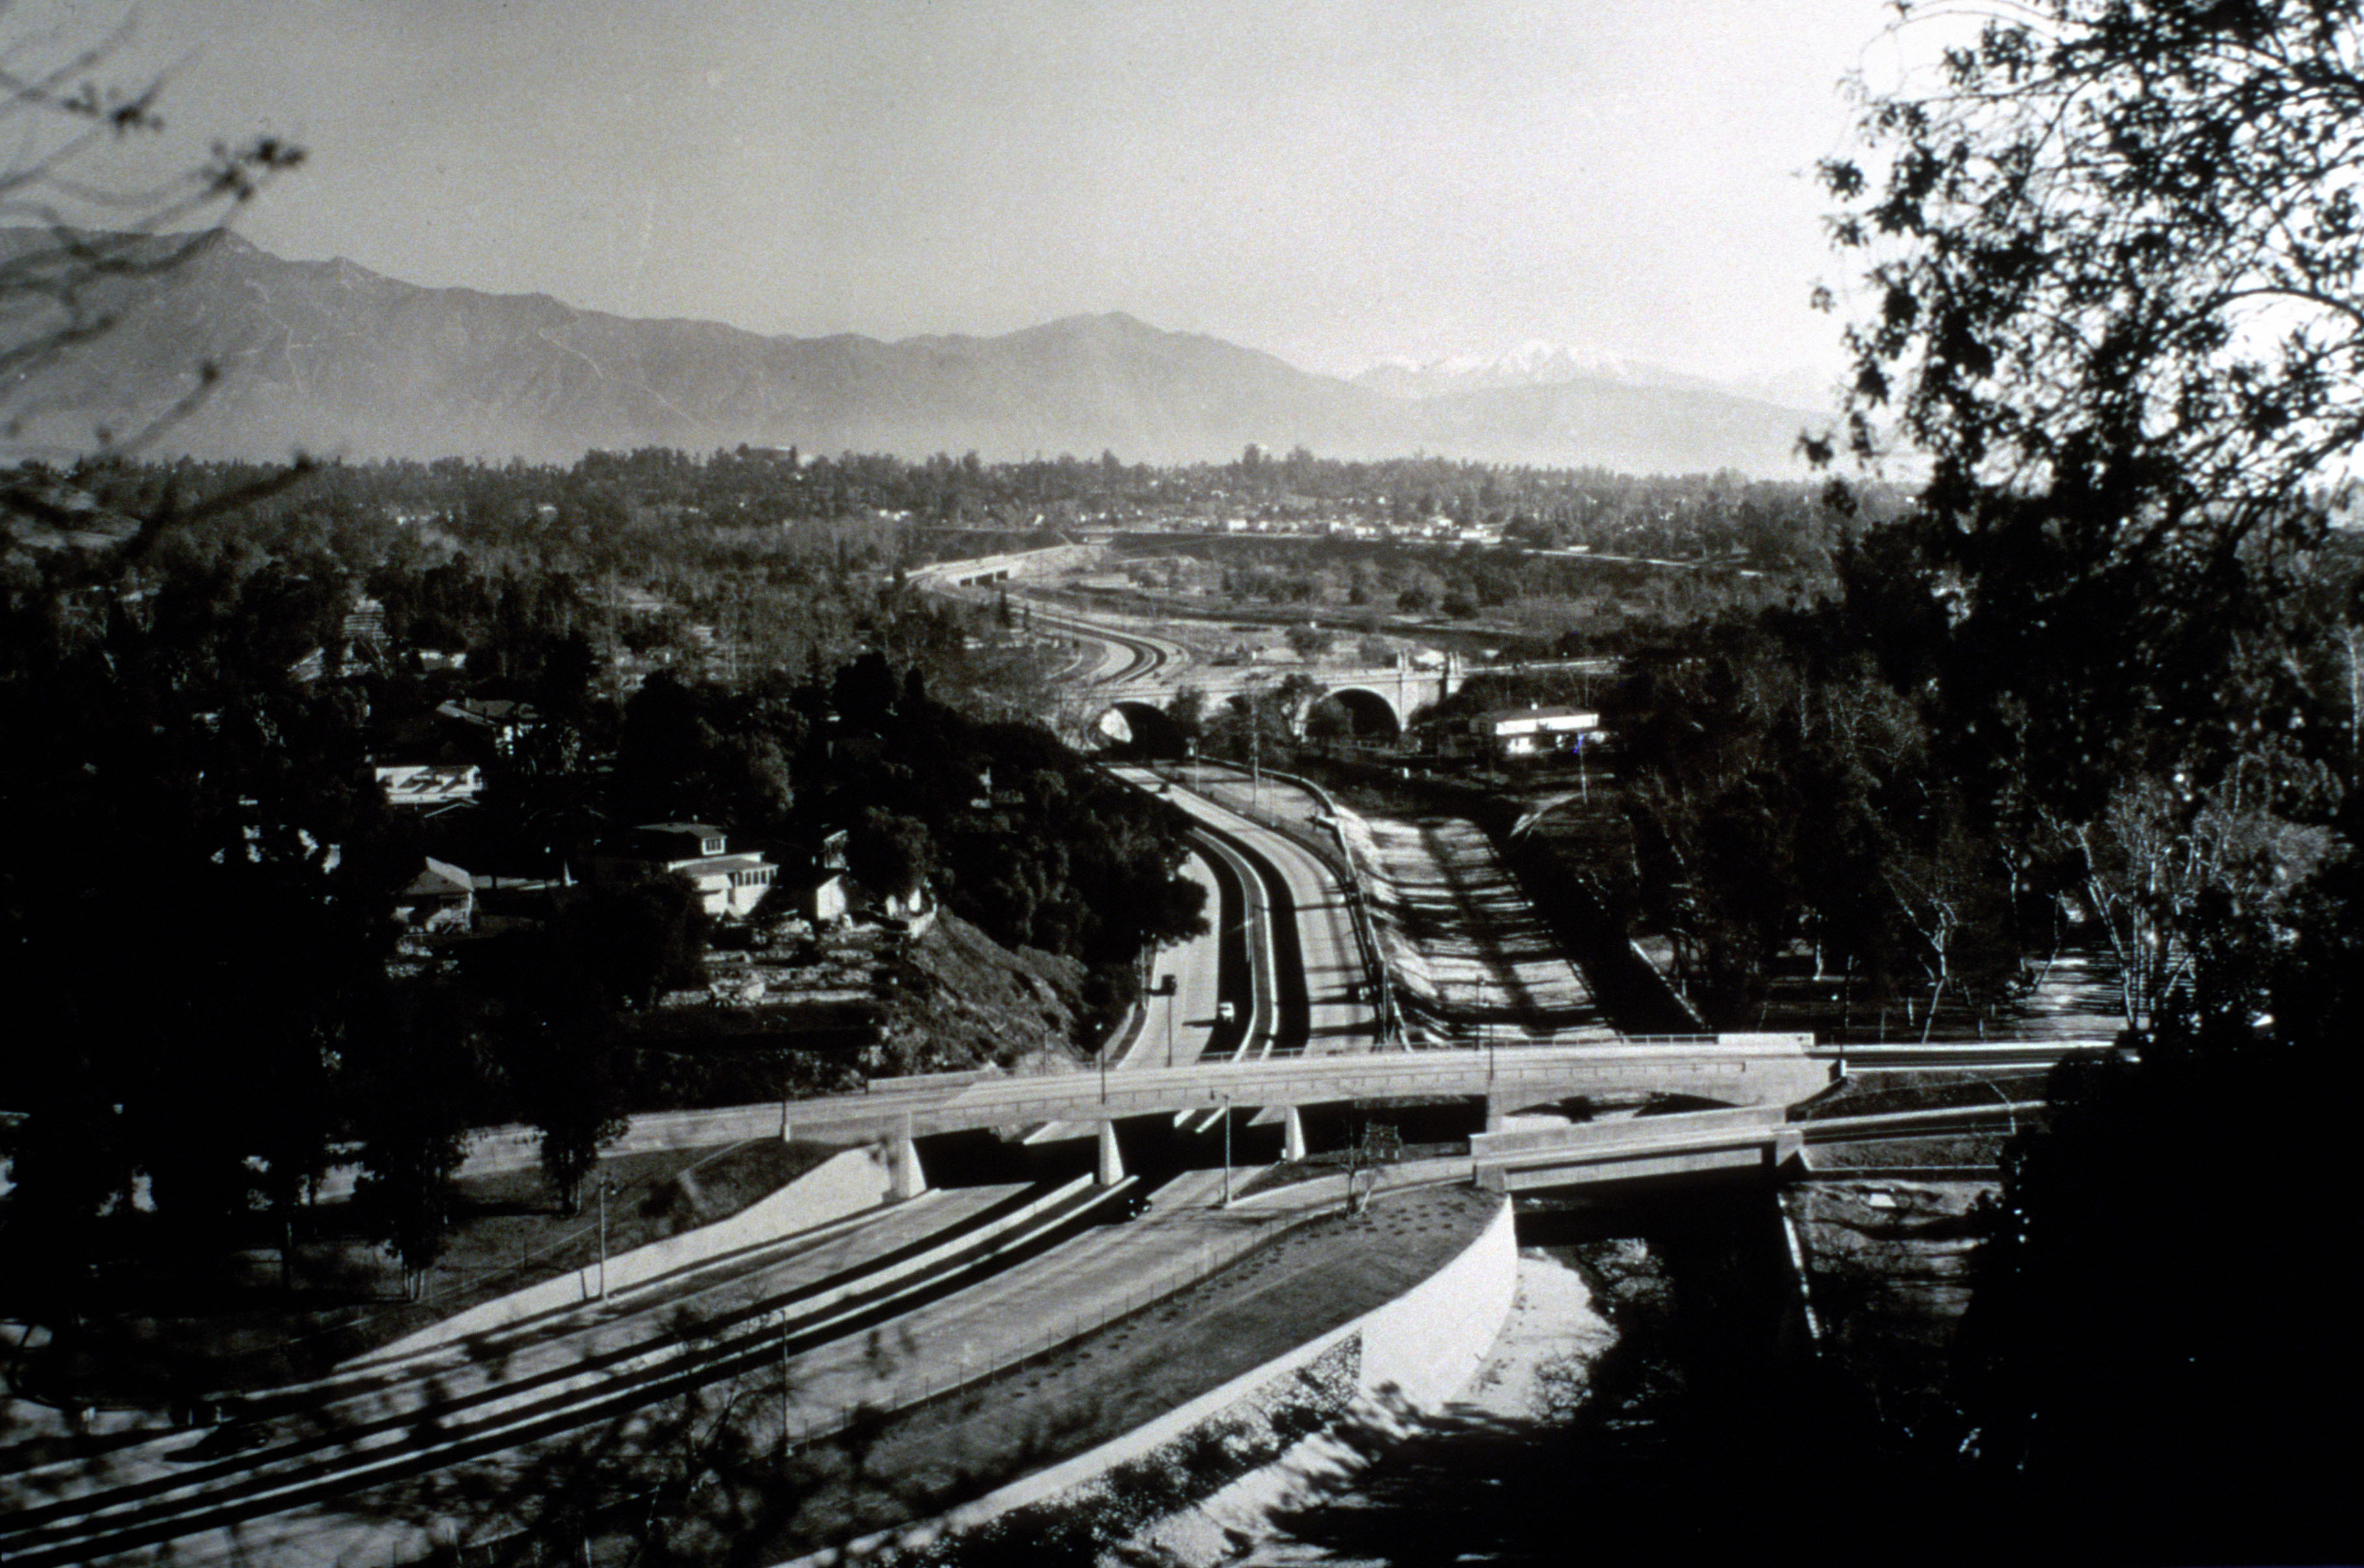 Looking south along the 110 in 1940